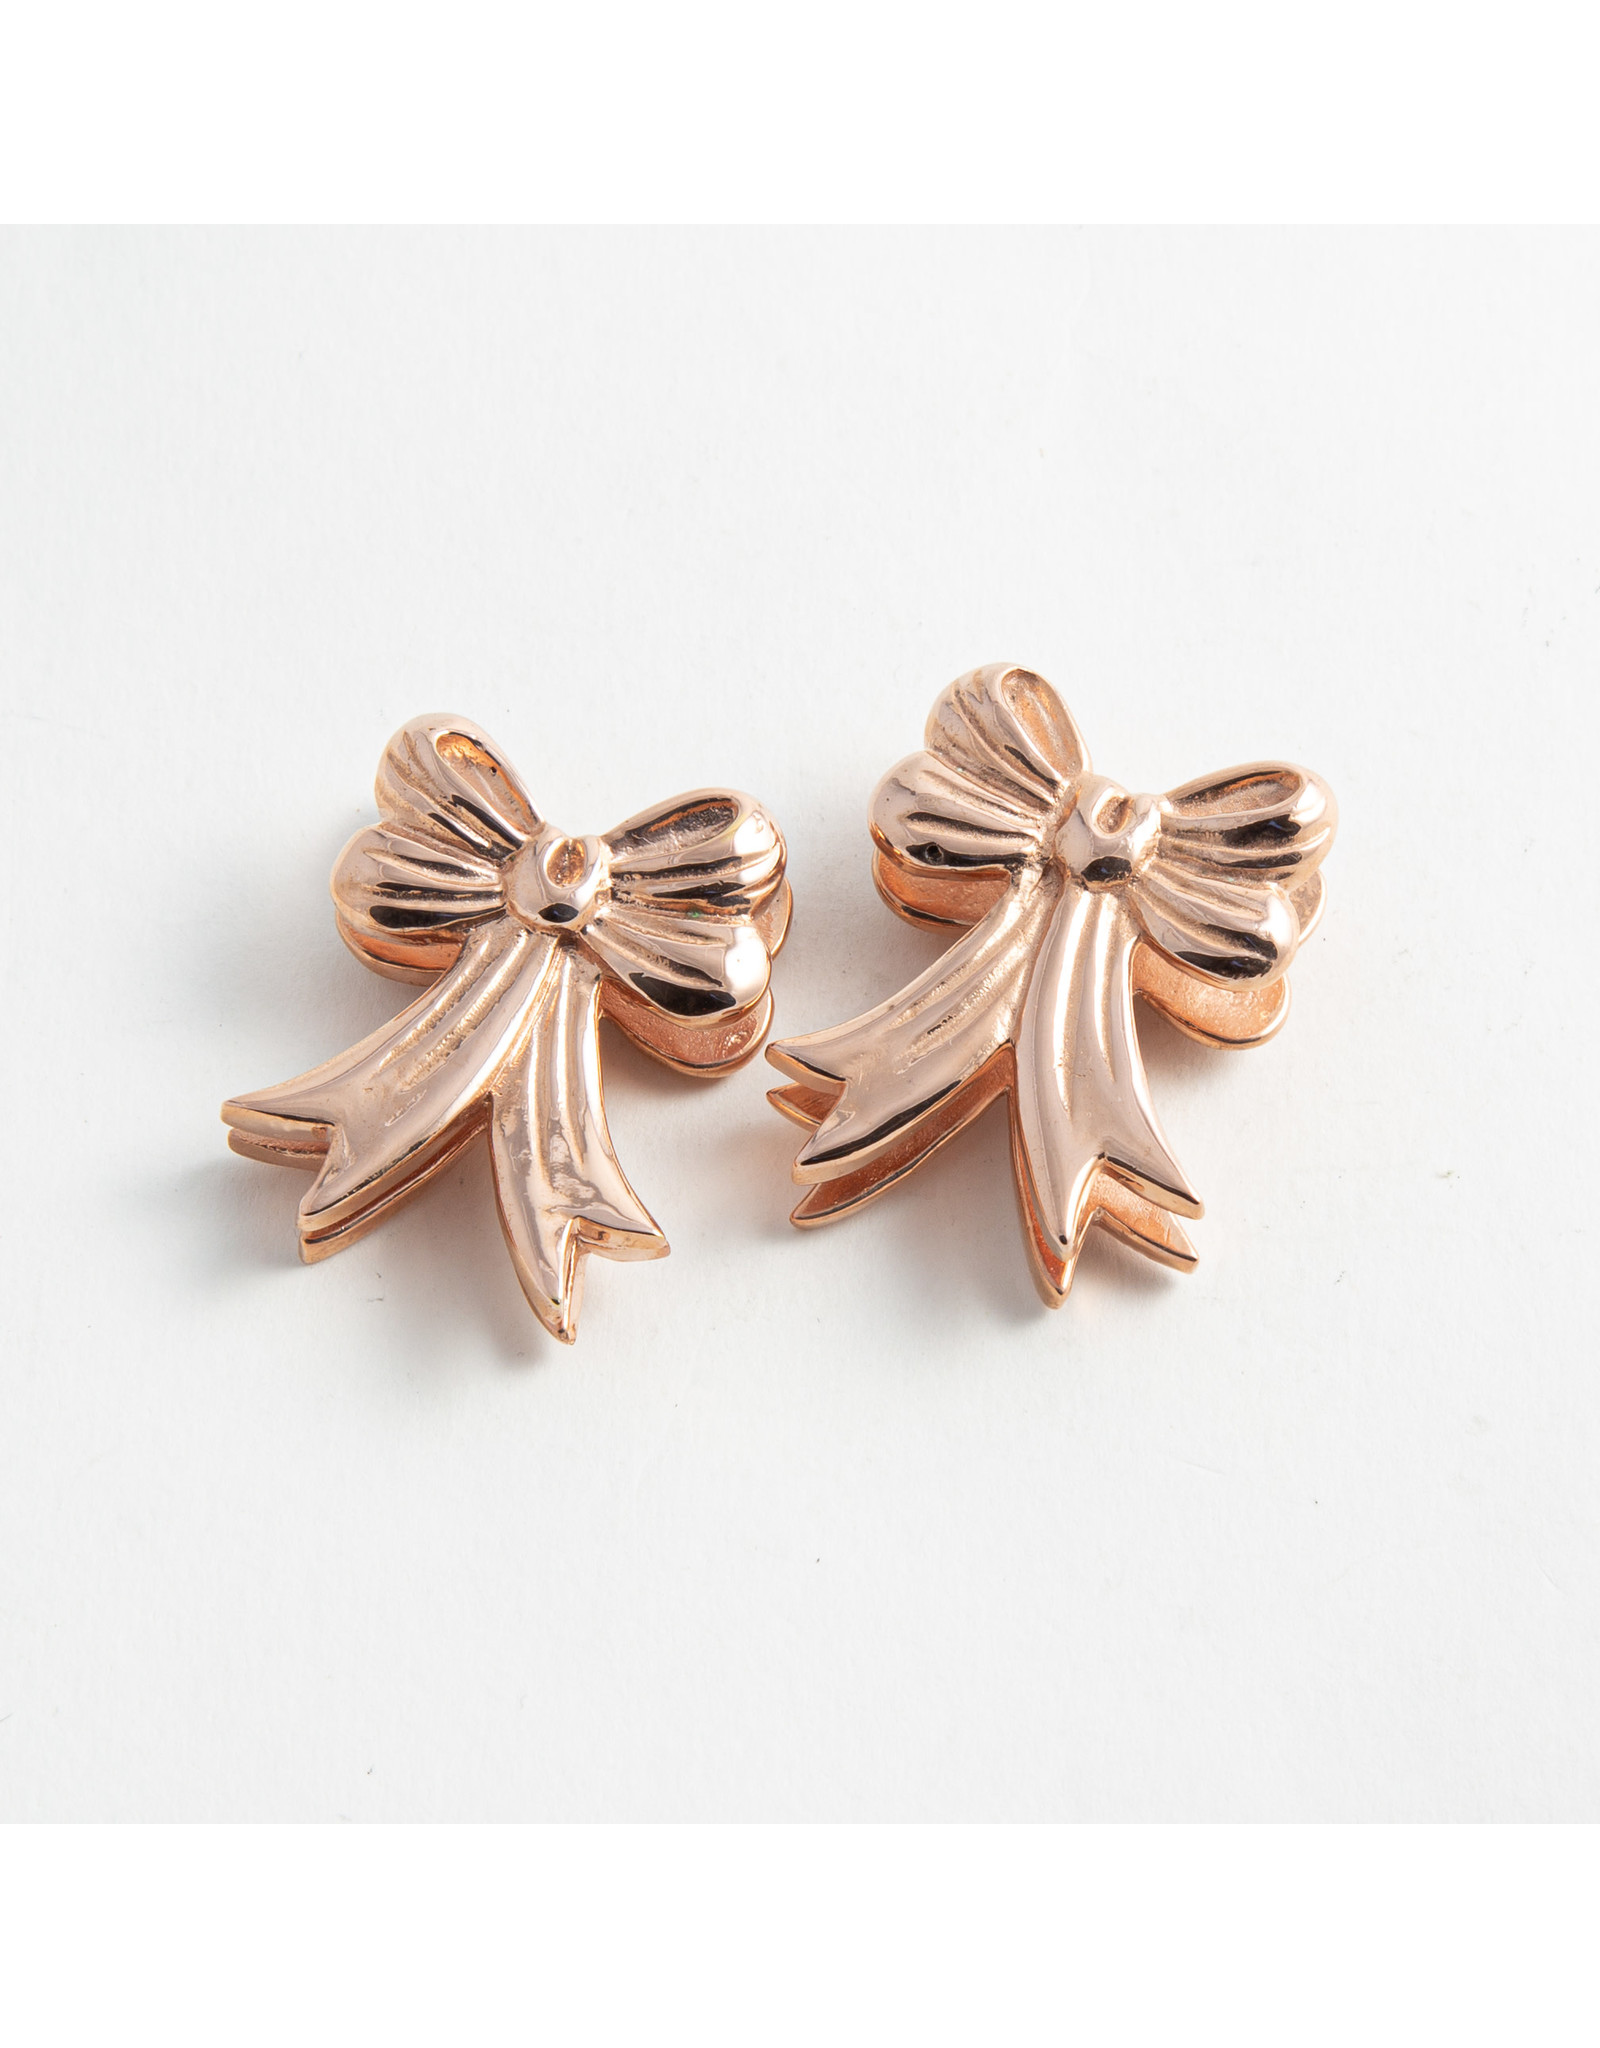 Buddha Jewelry Organics Buddha Jewelry Organics Rose Gold plate XL Bow Weights